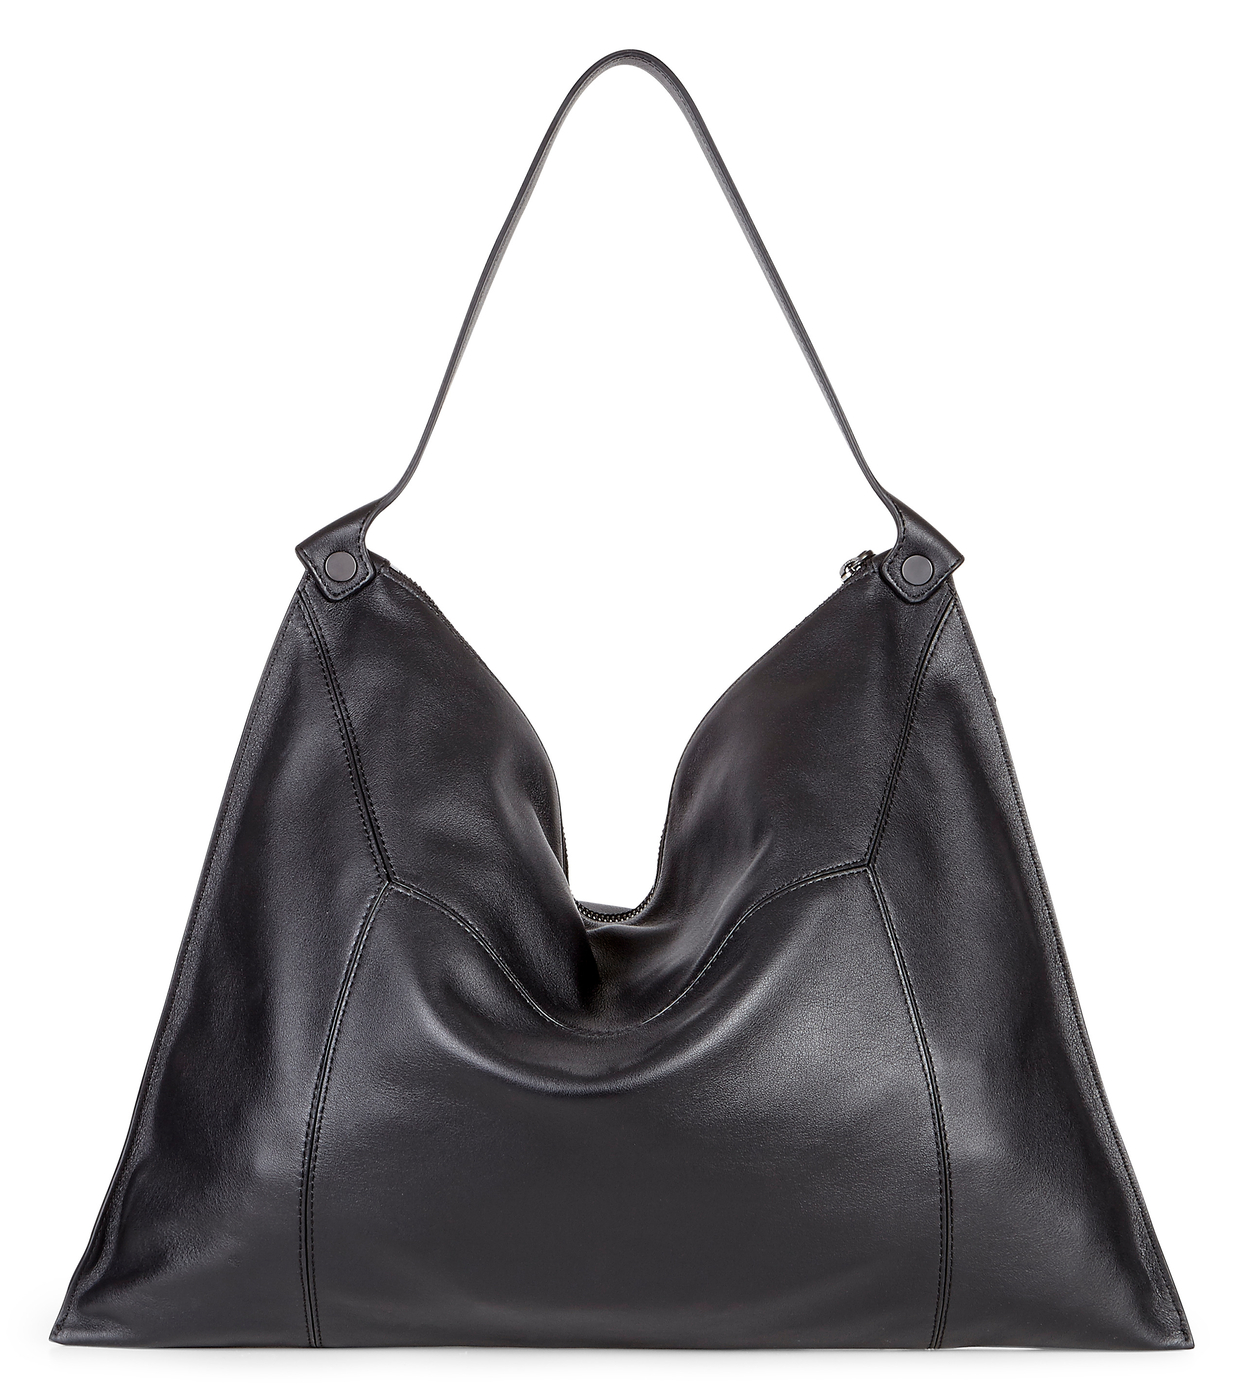 ECCO SCULPTURED Shoulder Bag2